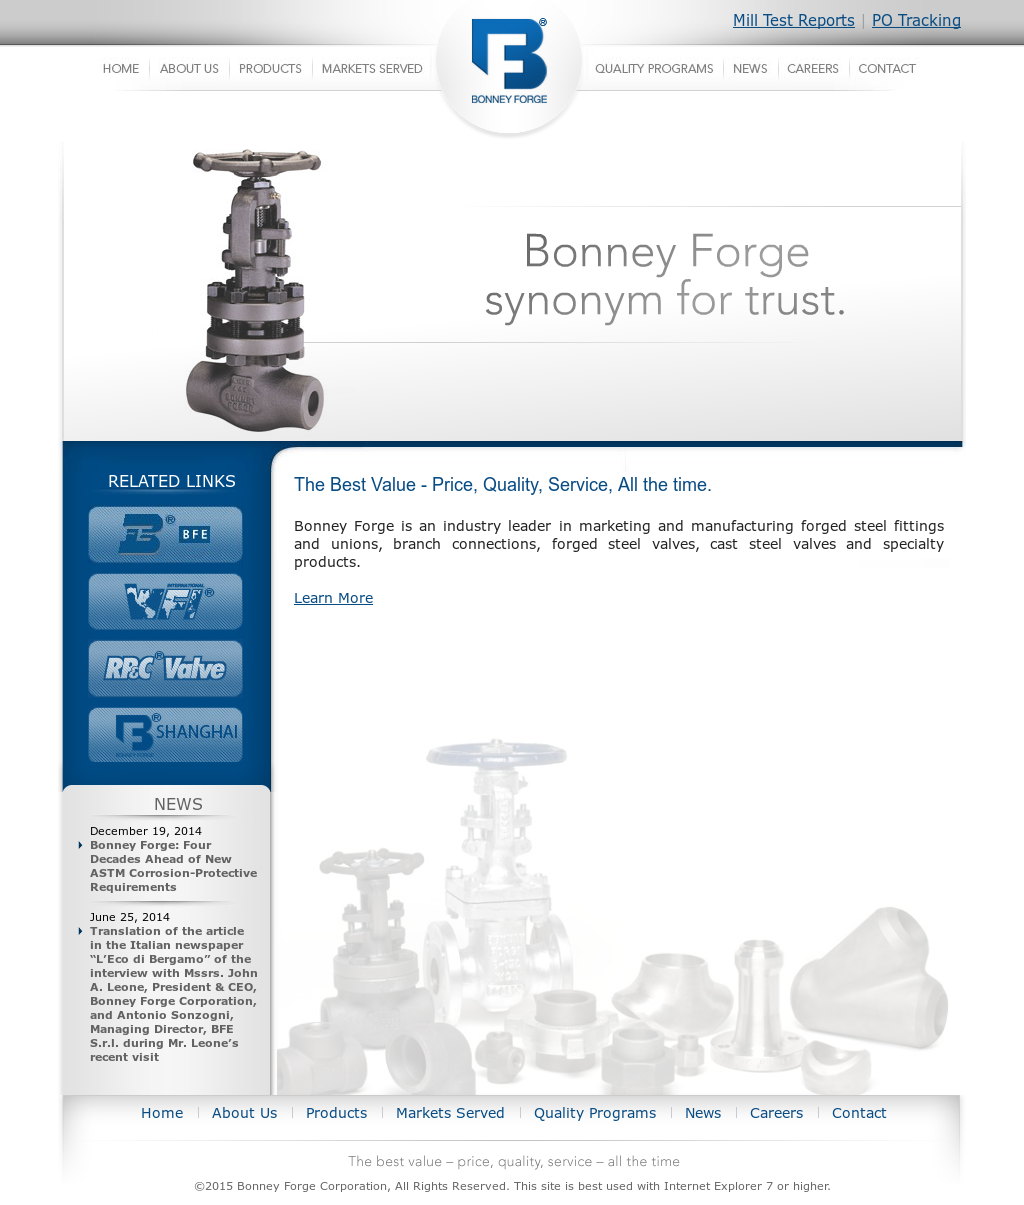 Bonney Forge Competitors, Revenue and Employees - Owler